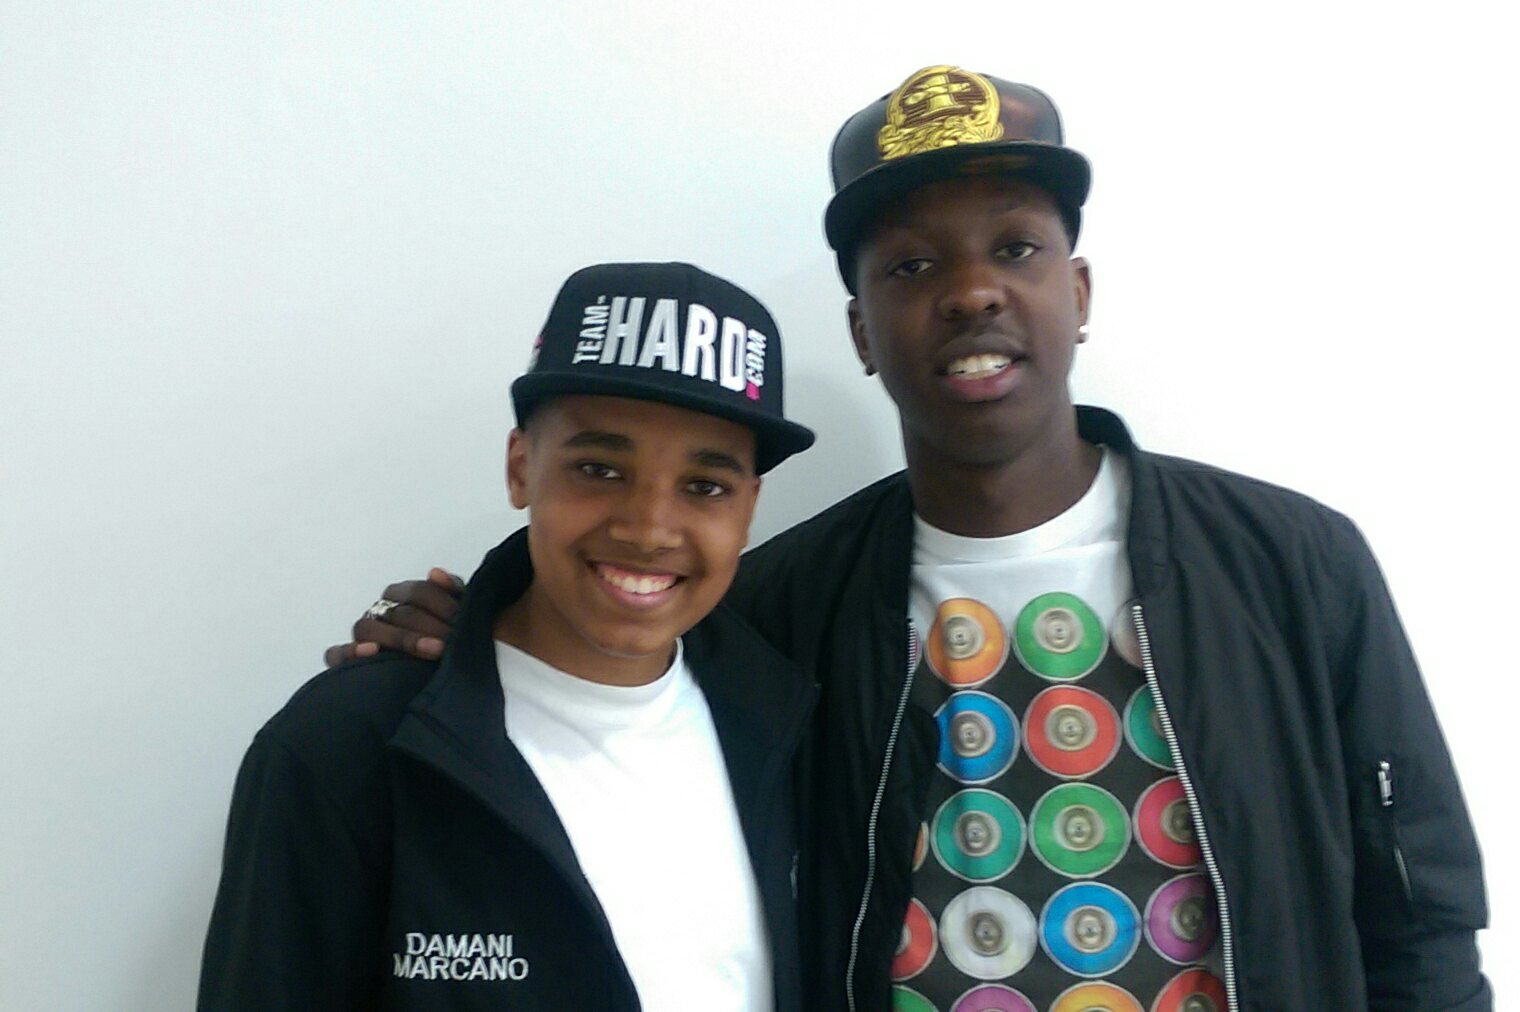 Jamal-Edwards-and-Damani-Marcano